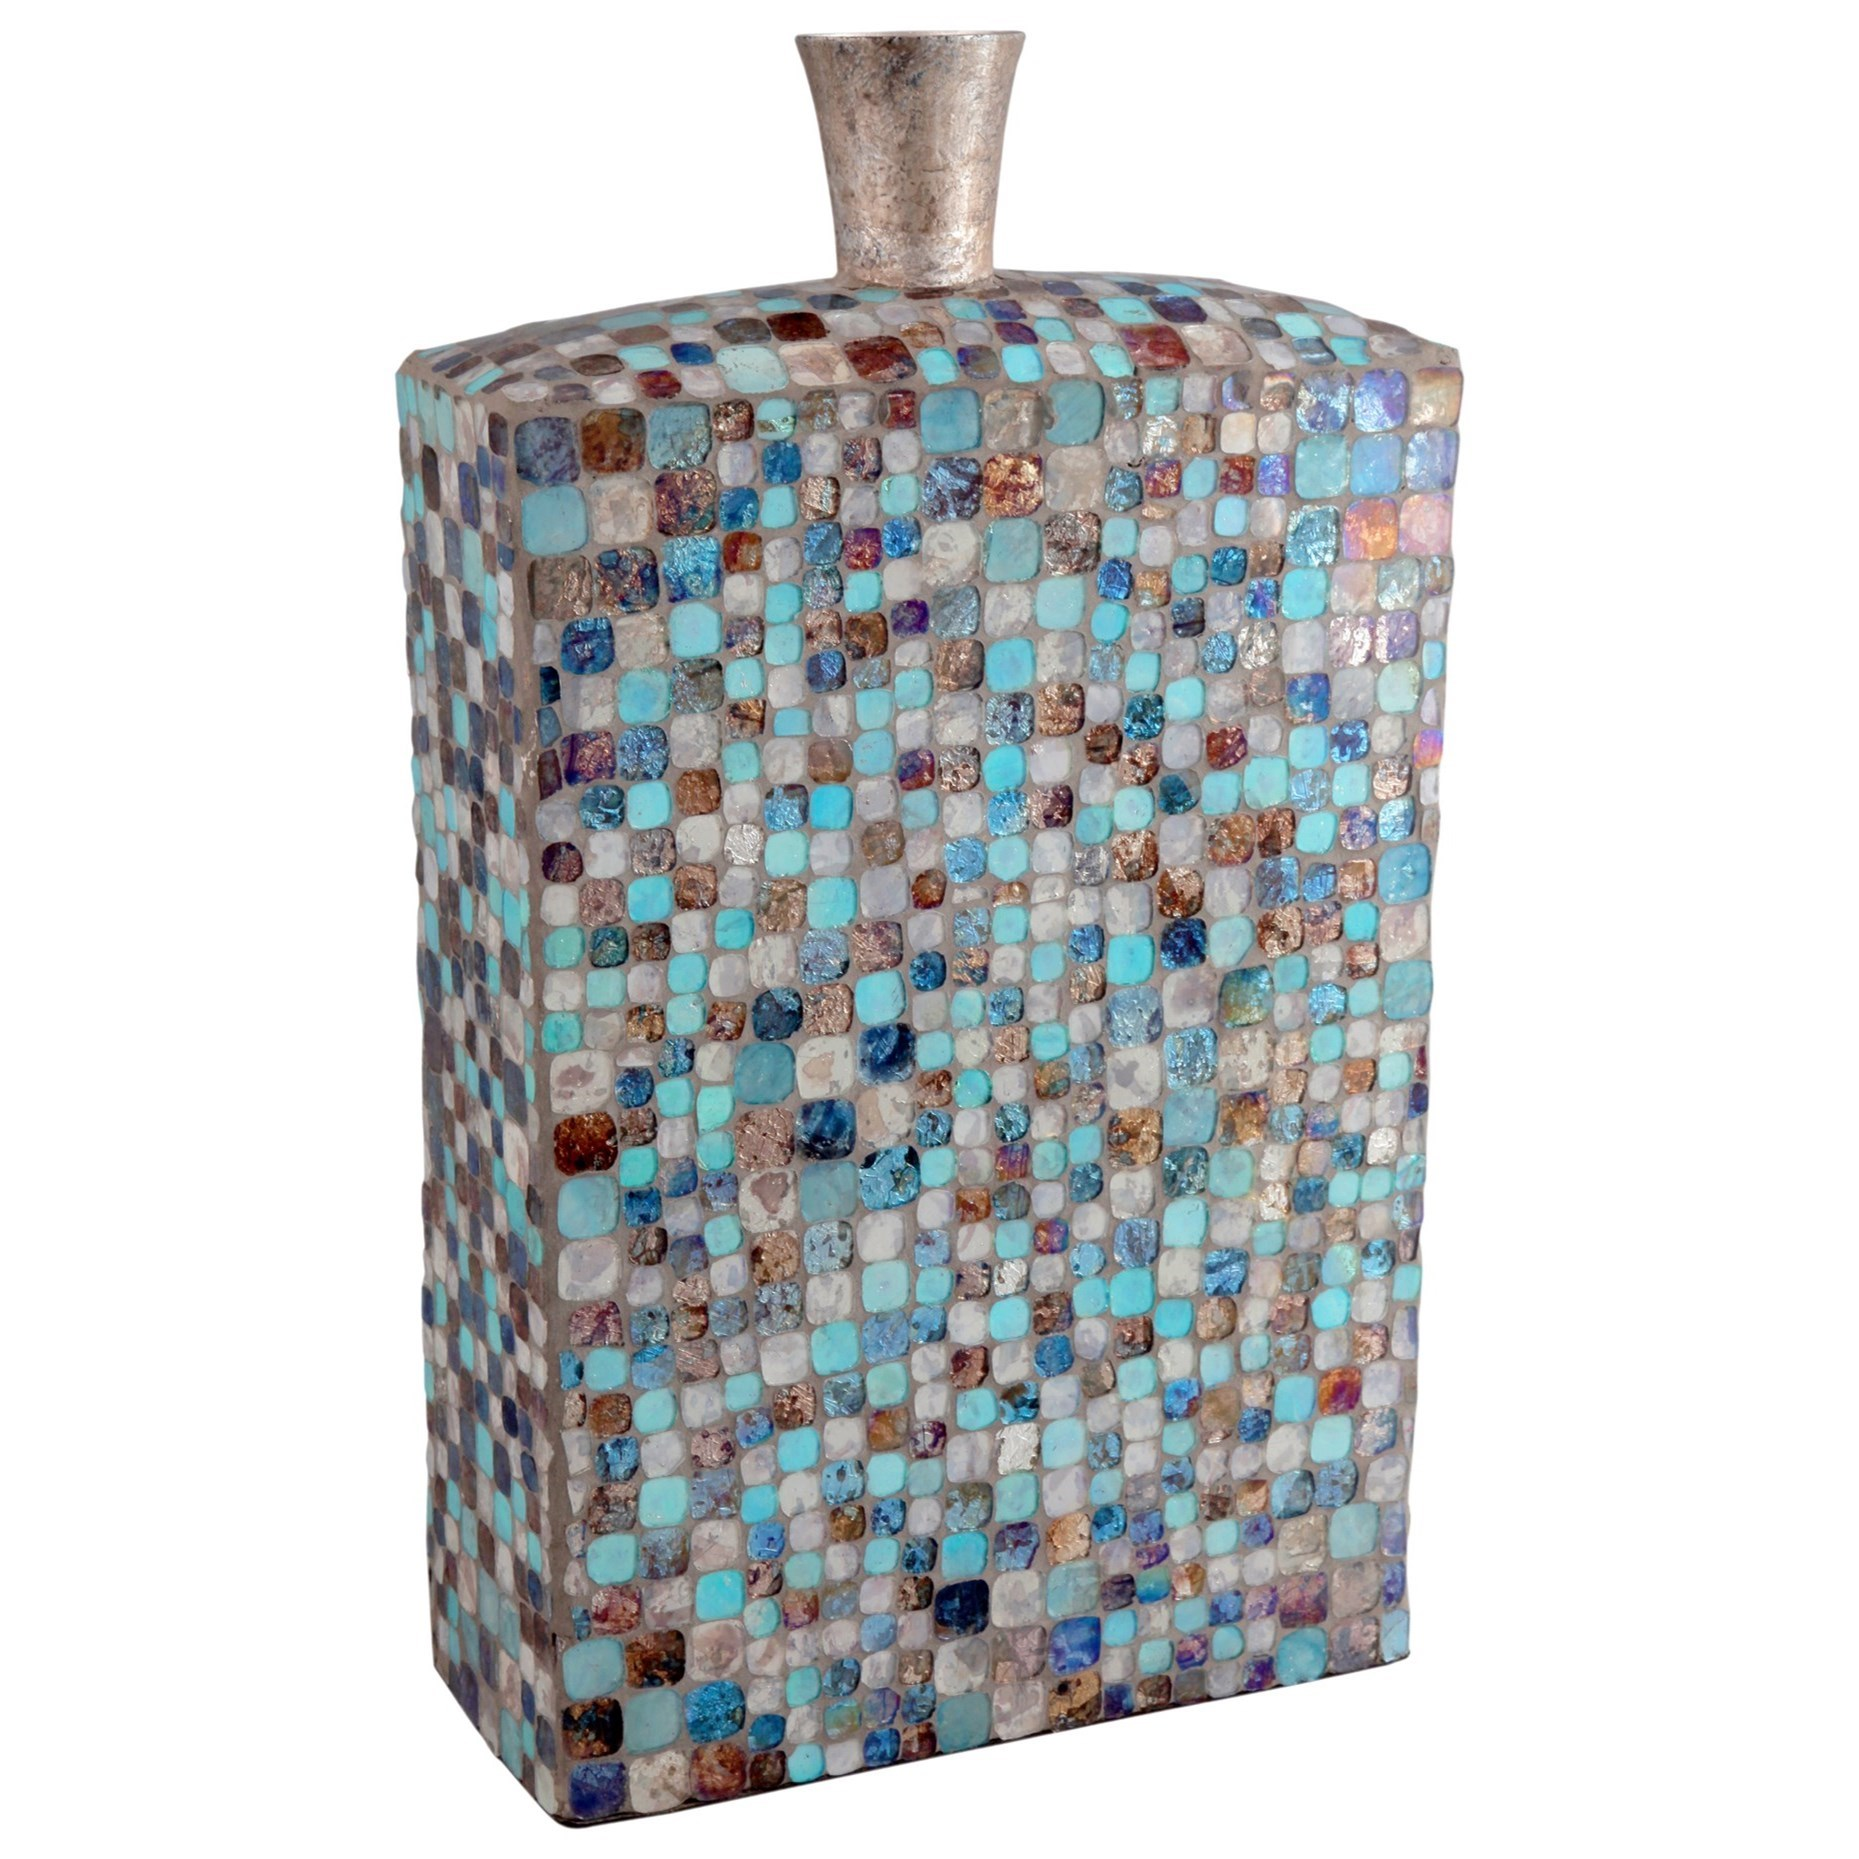 Vases & Urns Azul Mosaic Vase Tall by Moe's Home Collection at Stoney Creek Furniture